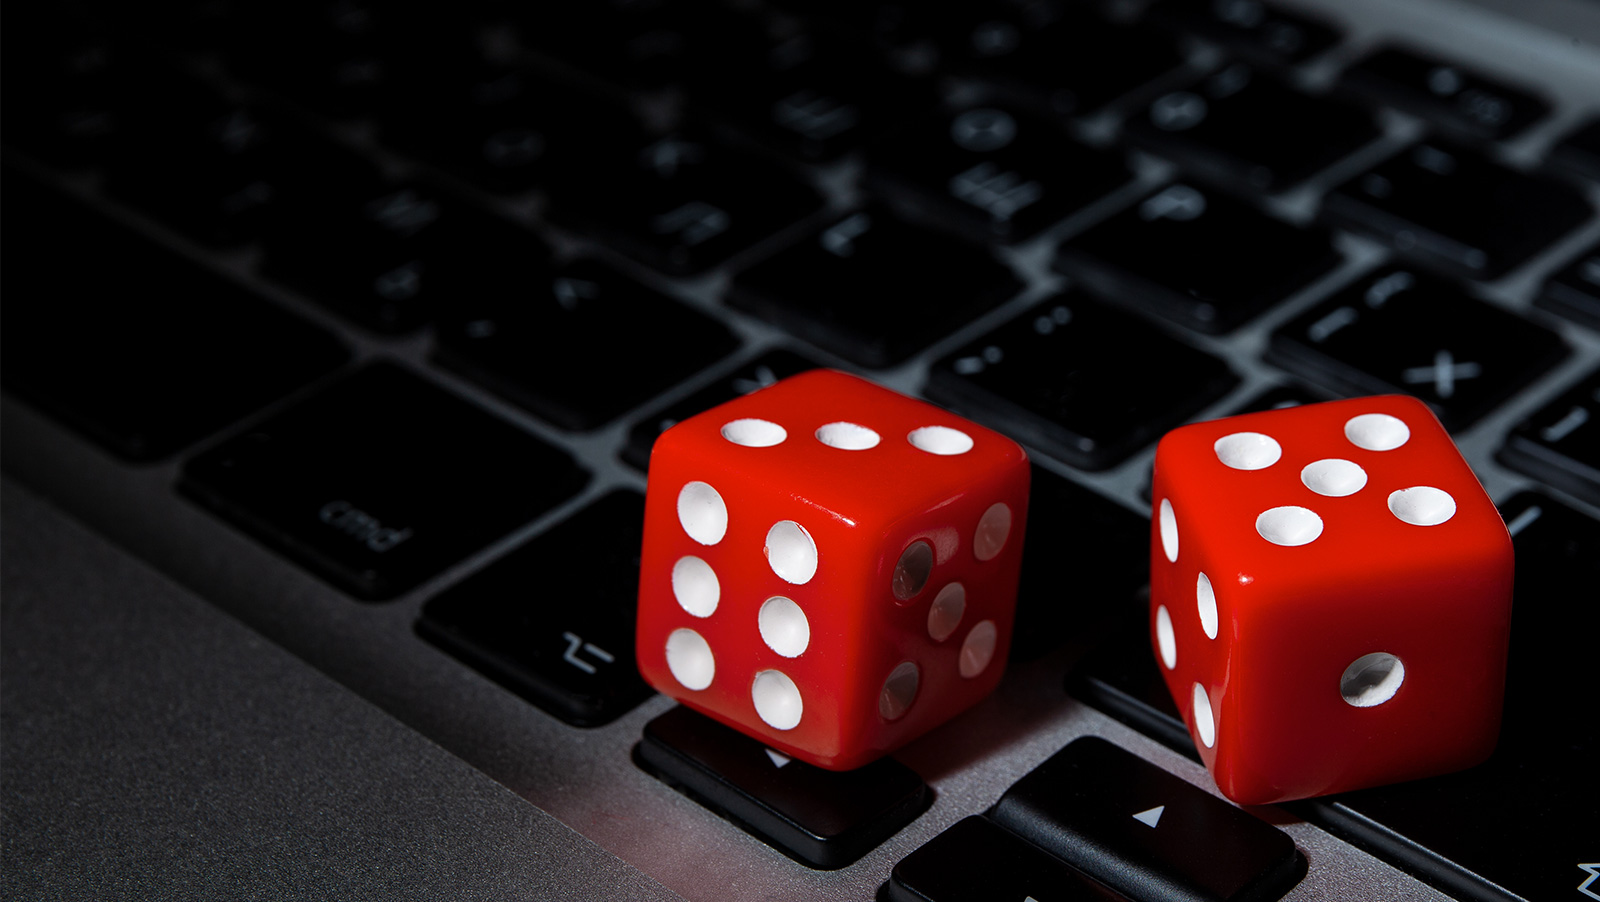 What are the tips to win online poker games?